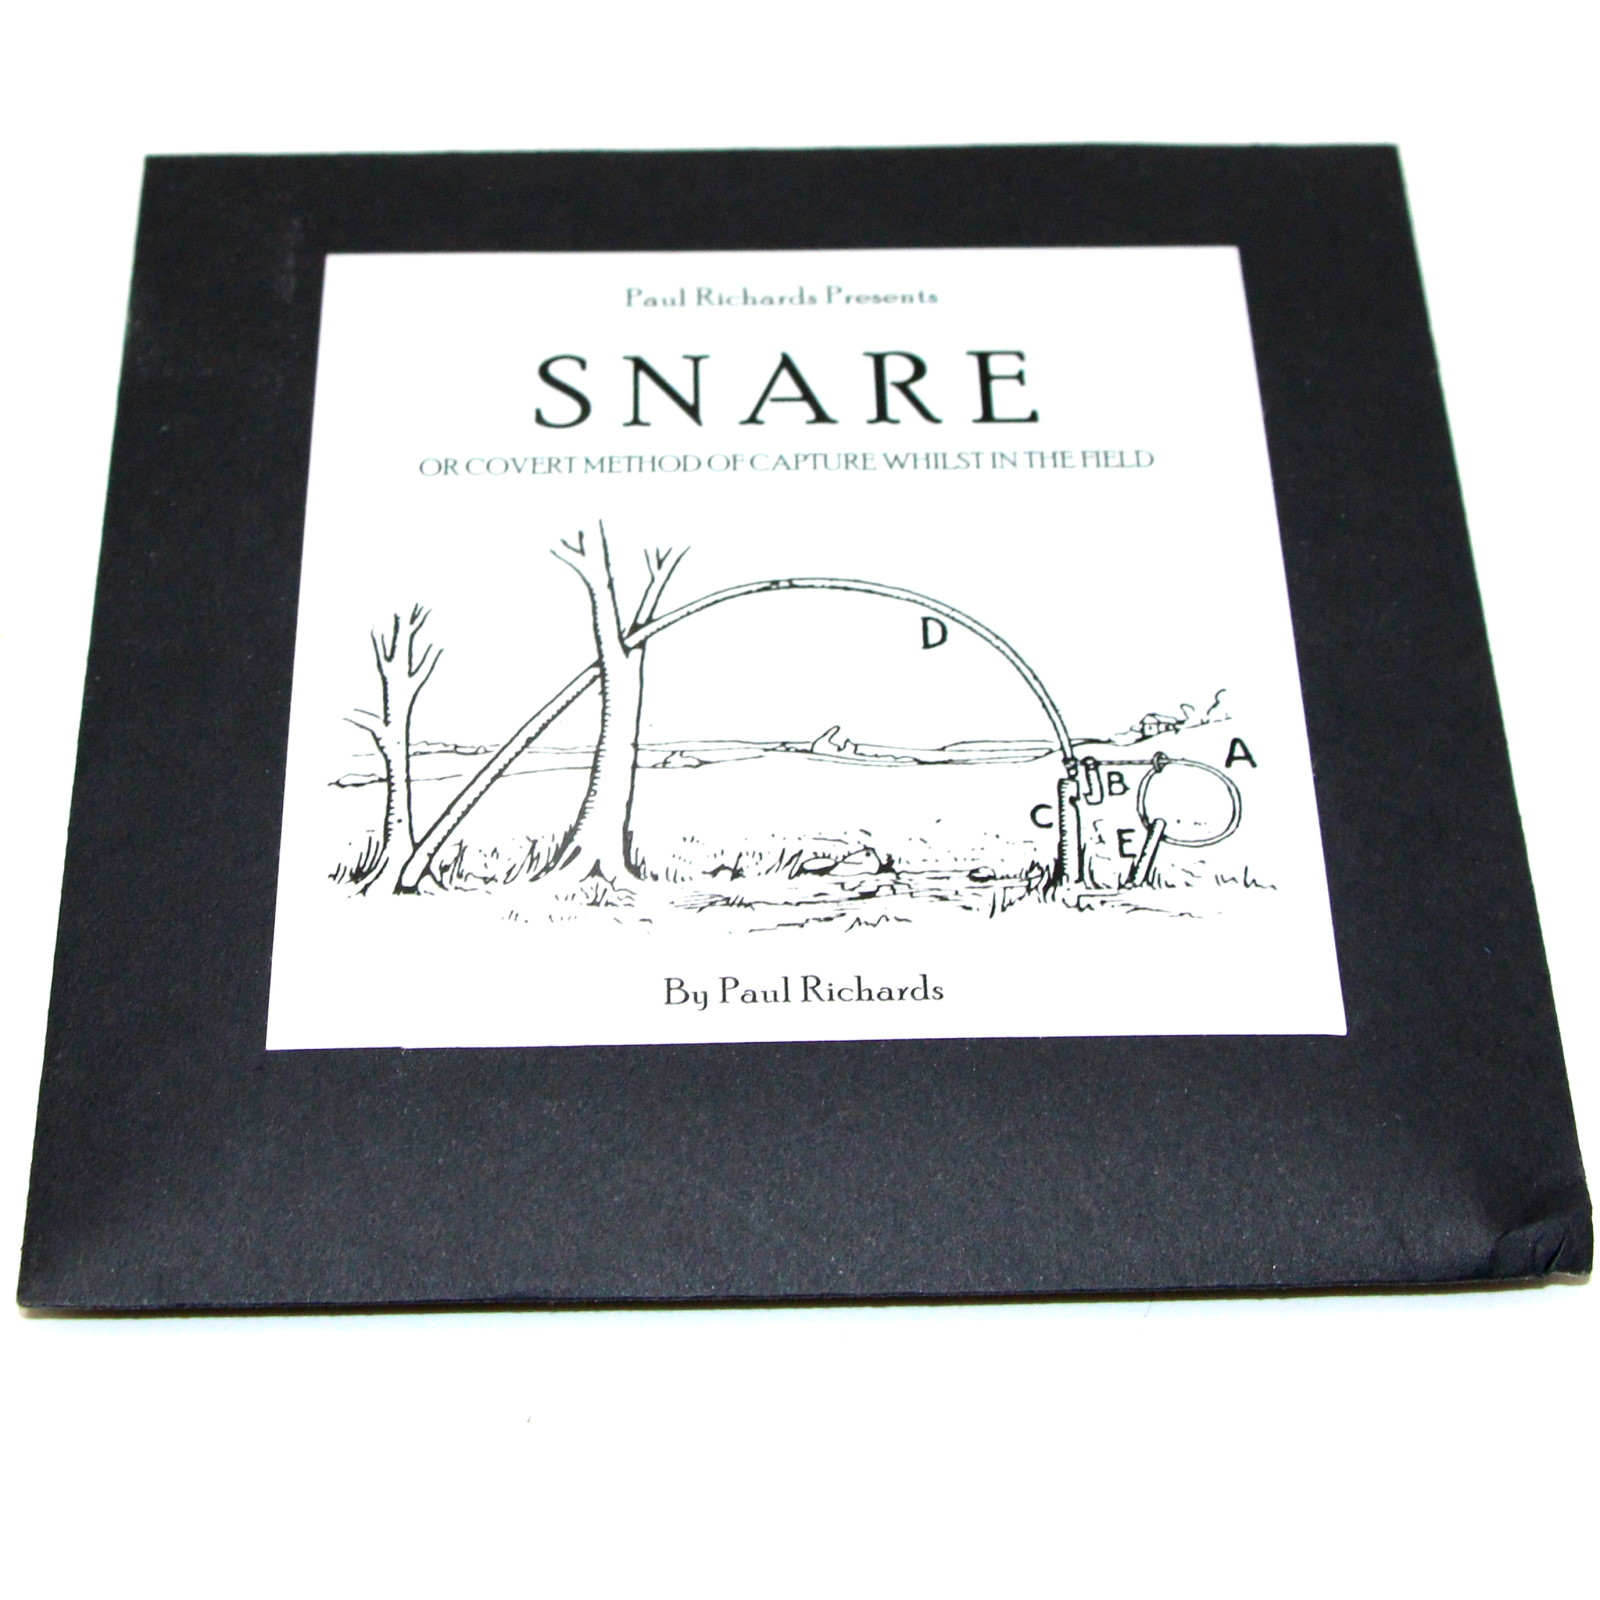 Snare by Paul Richards